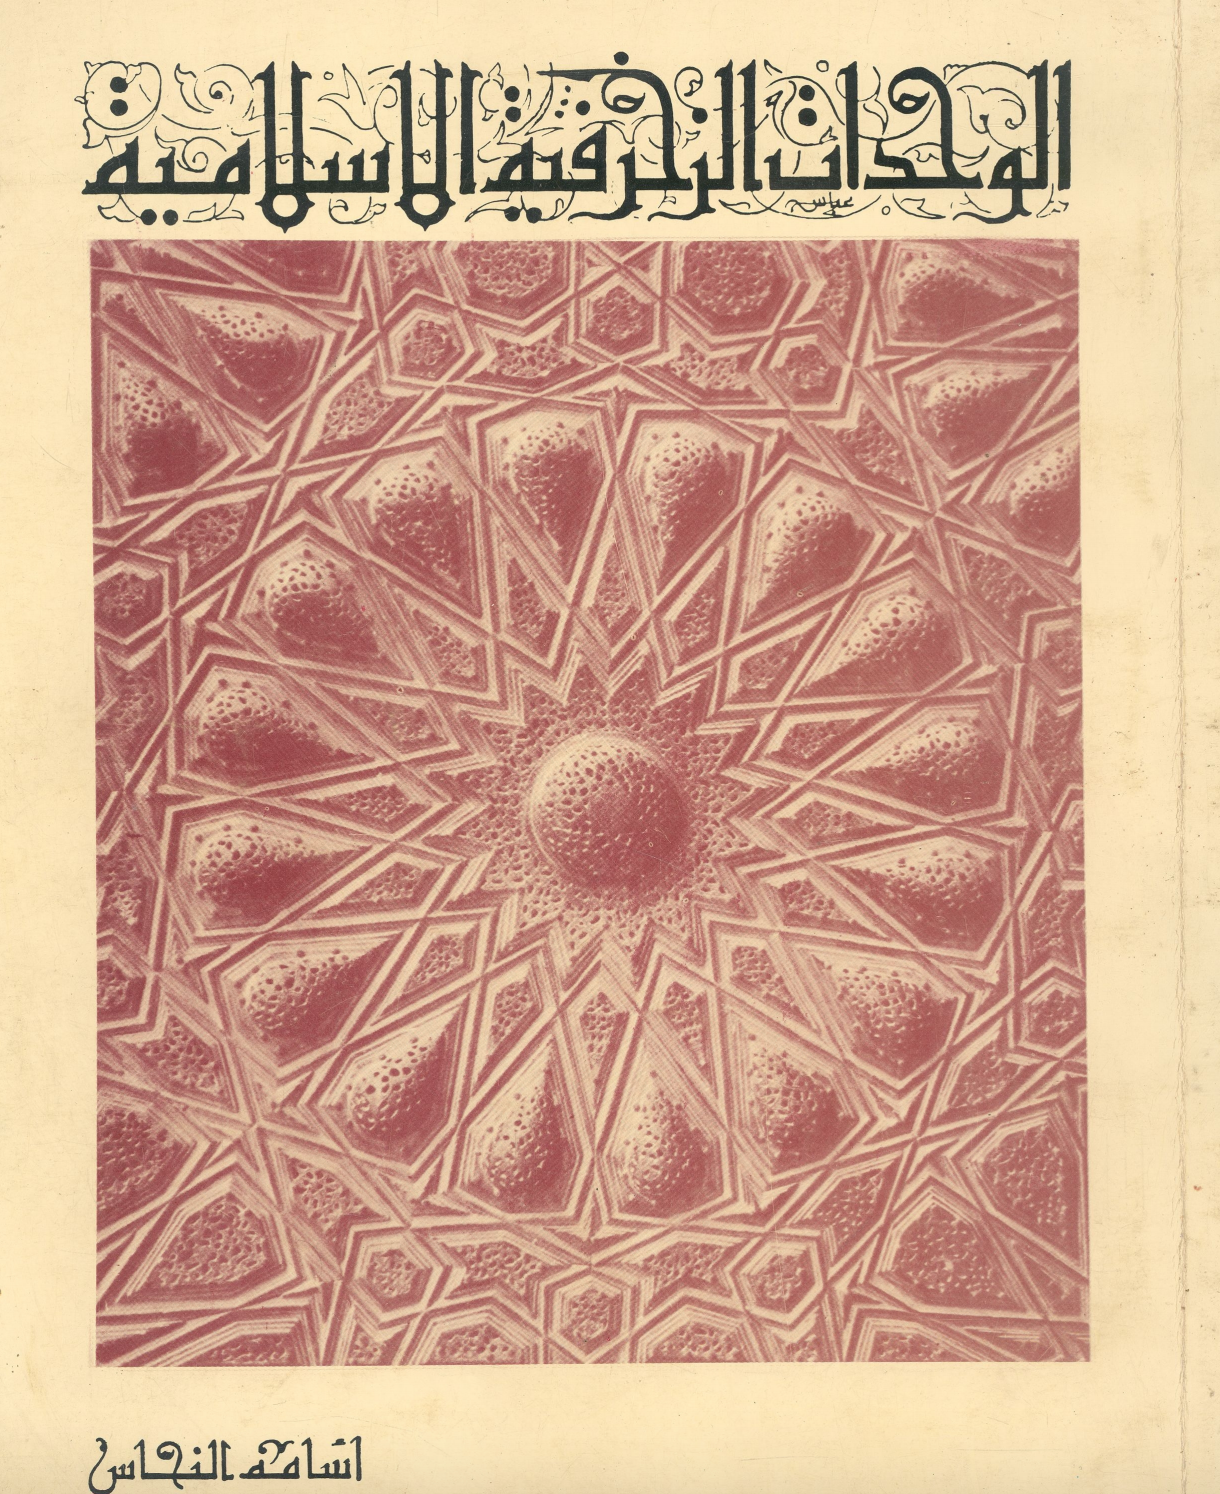 Islamic Pattern Units الوحدات الزخرفية الإسلامية Islamic patterns are divided to four major units: geometric unit, vegetation unit, animal based unit and Arabic calligraphy unit.